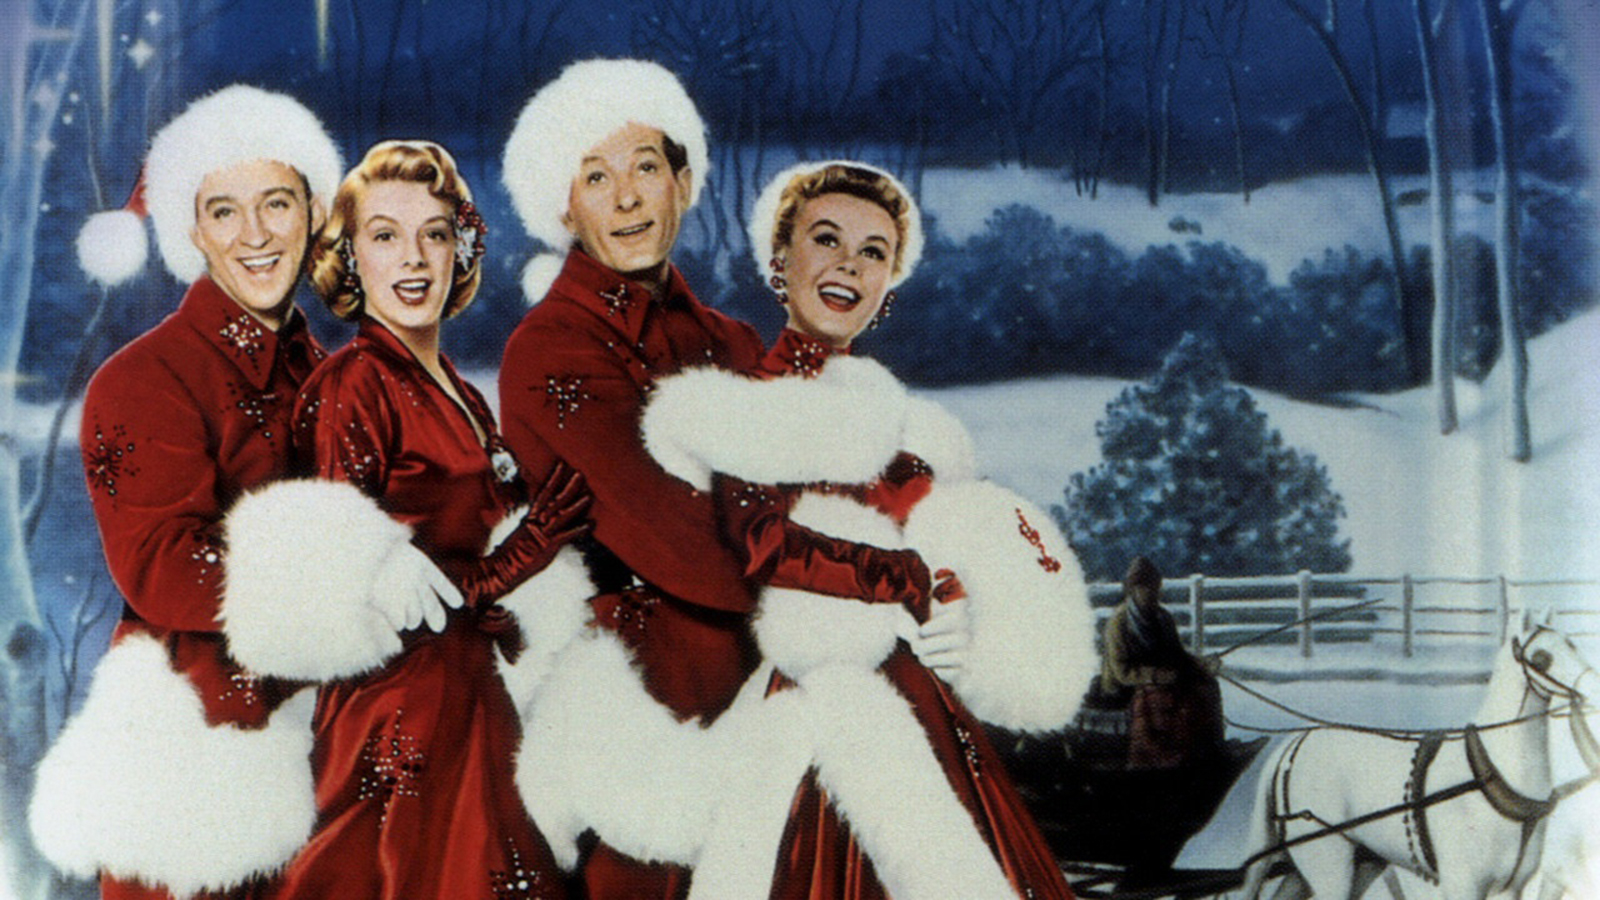 White Christmas Source: https://i1.wp.com/netflixlife.com/files/2015/11/White-Christmas.jpg